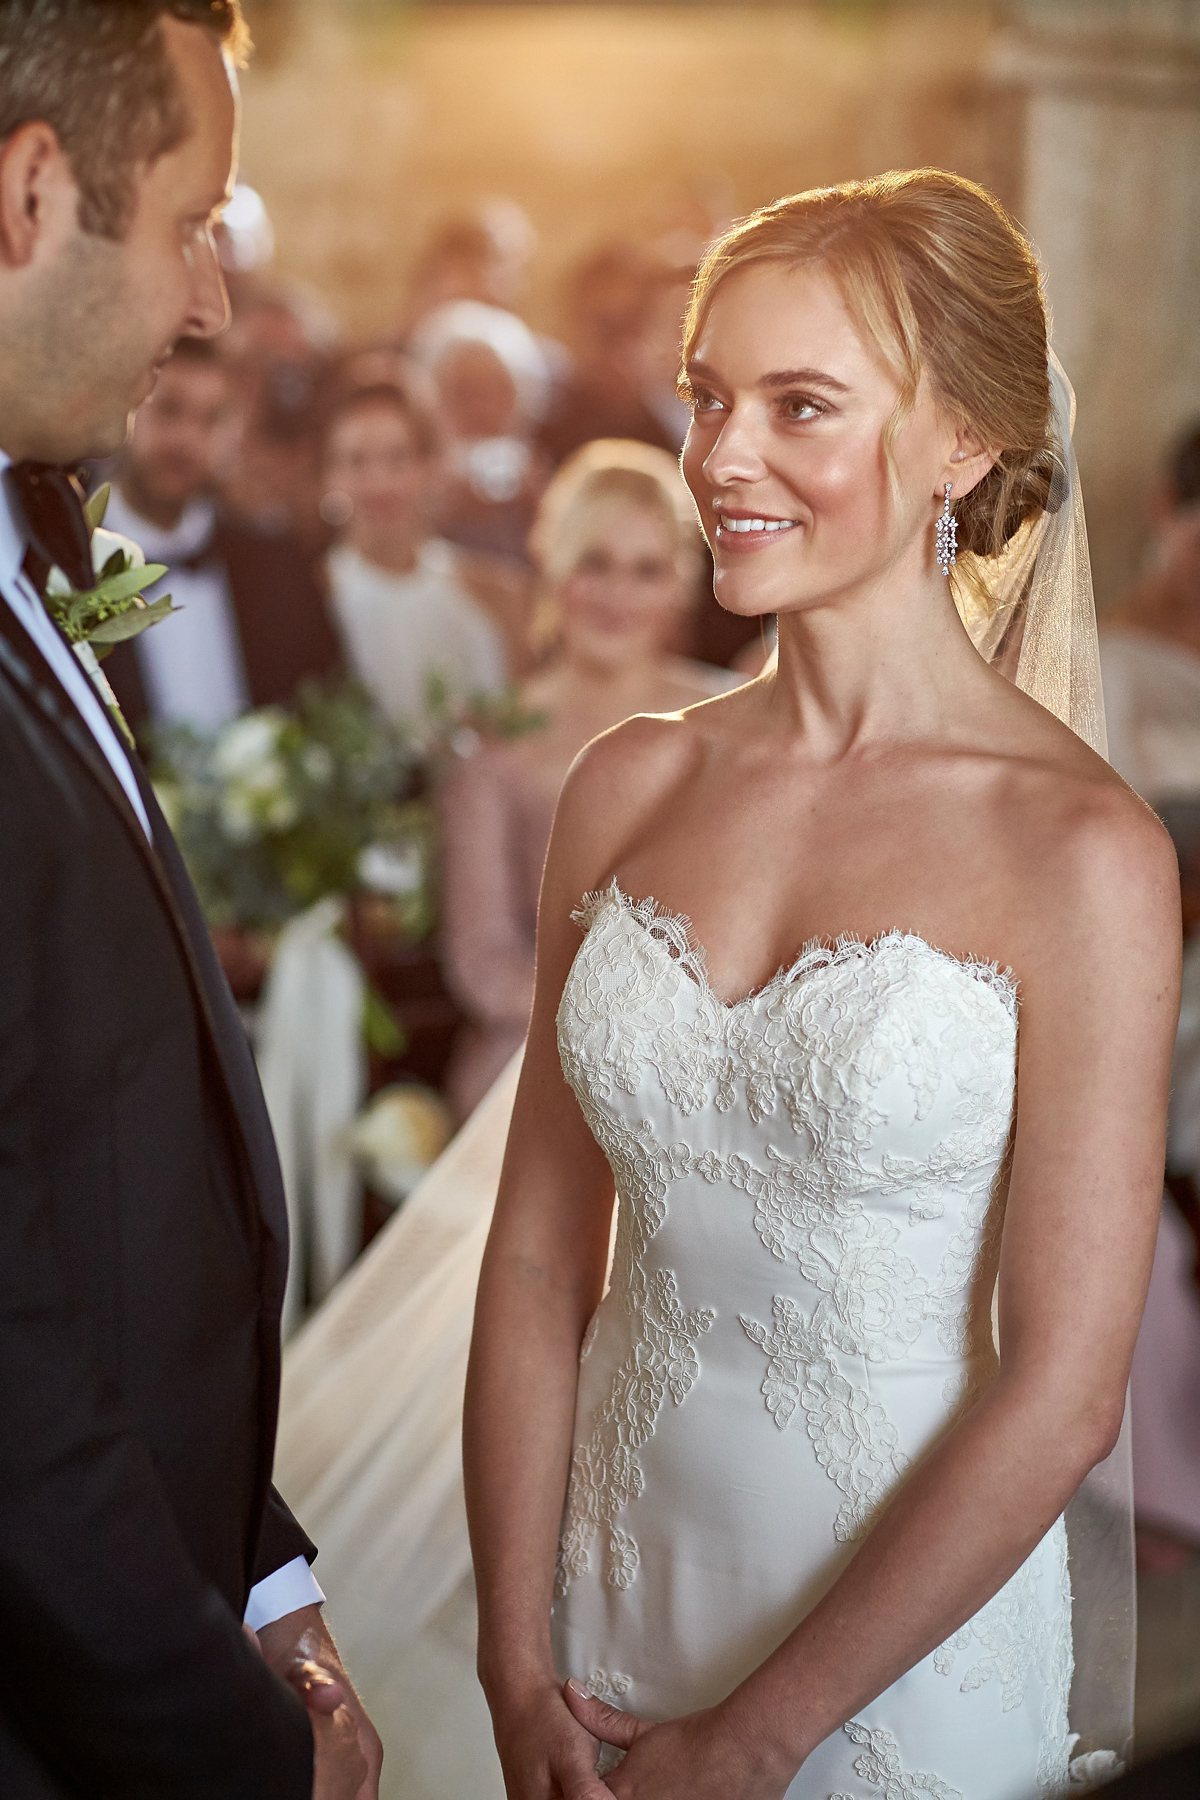 Black TIe Elegance and Ines di Santo Lace for an Elegant Villa Wedding in Tuscany (Weddings )